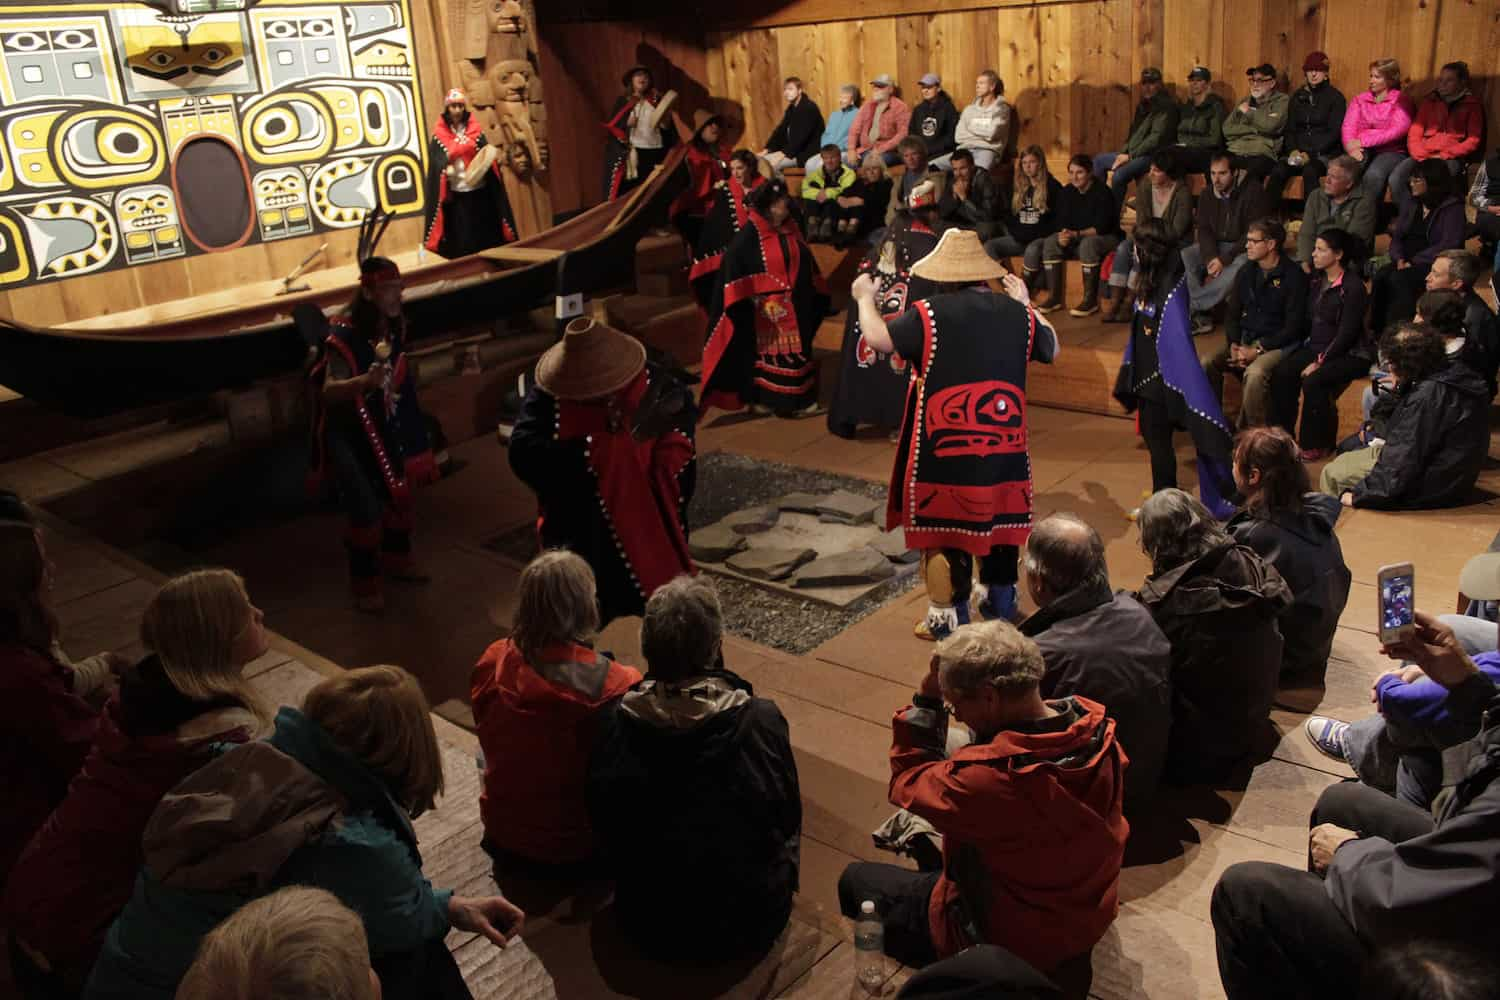 Icy Strait Point Excursions - Hoonah Tribal Dance - James Brooks via Flickr